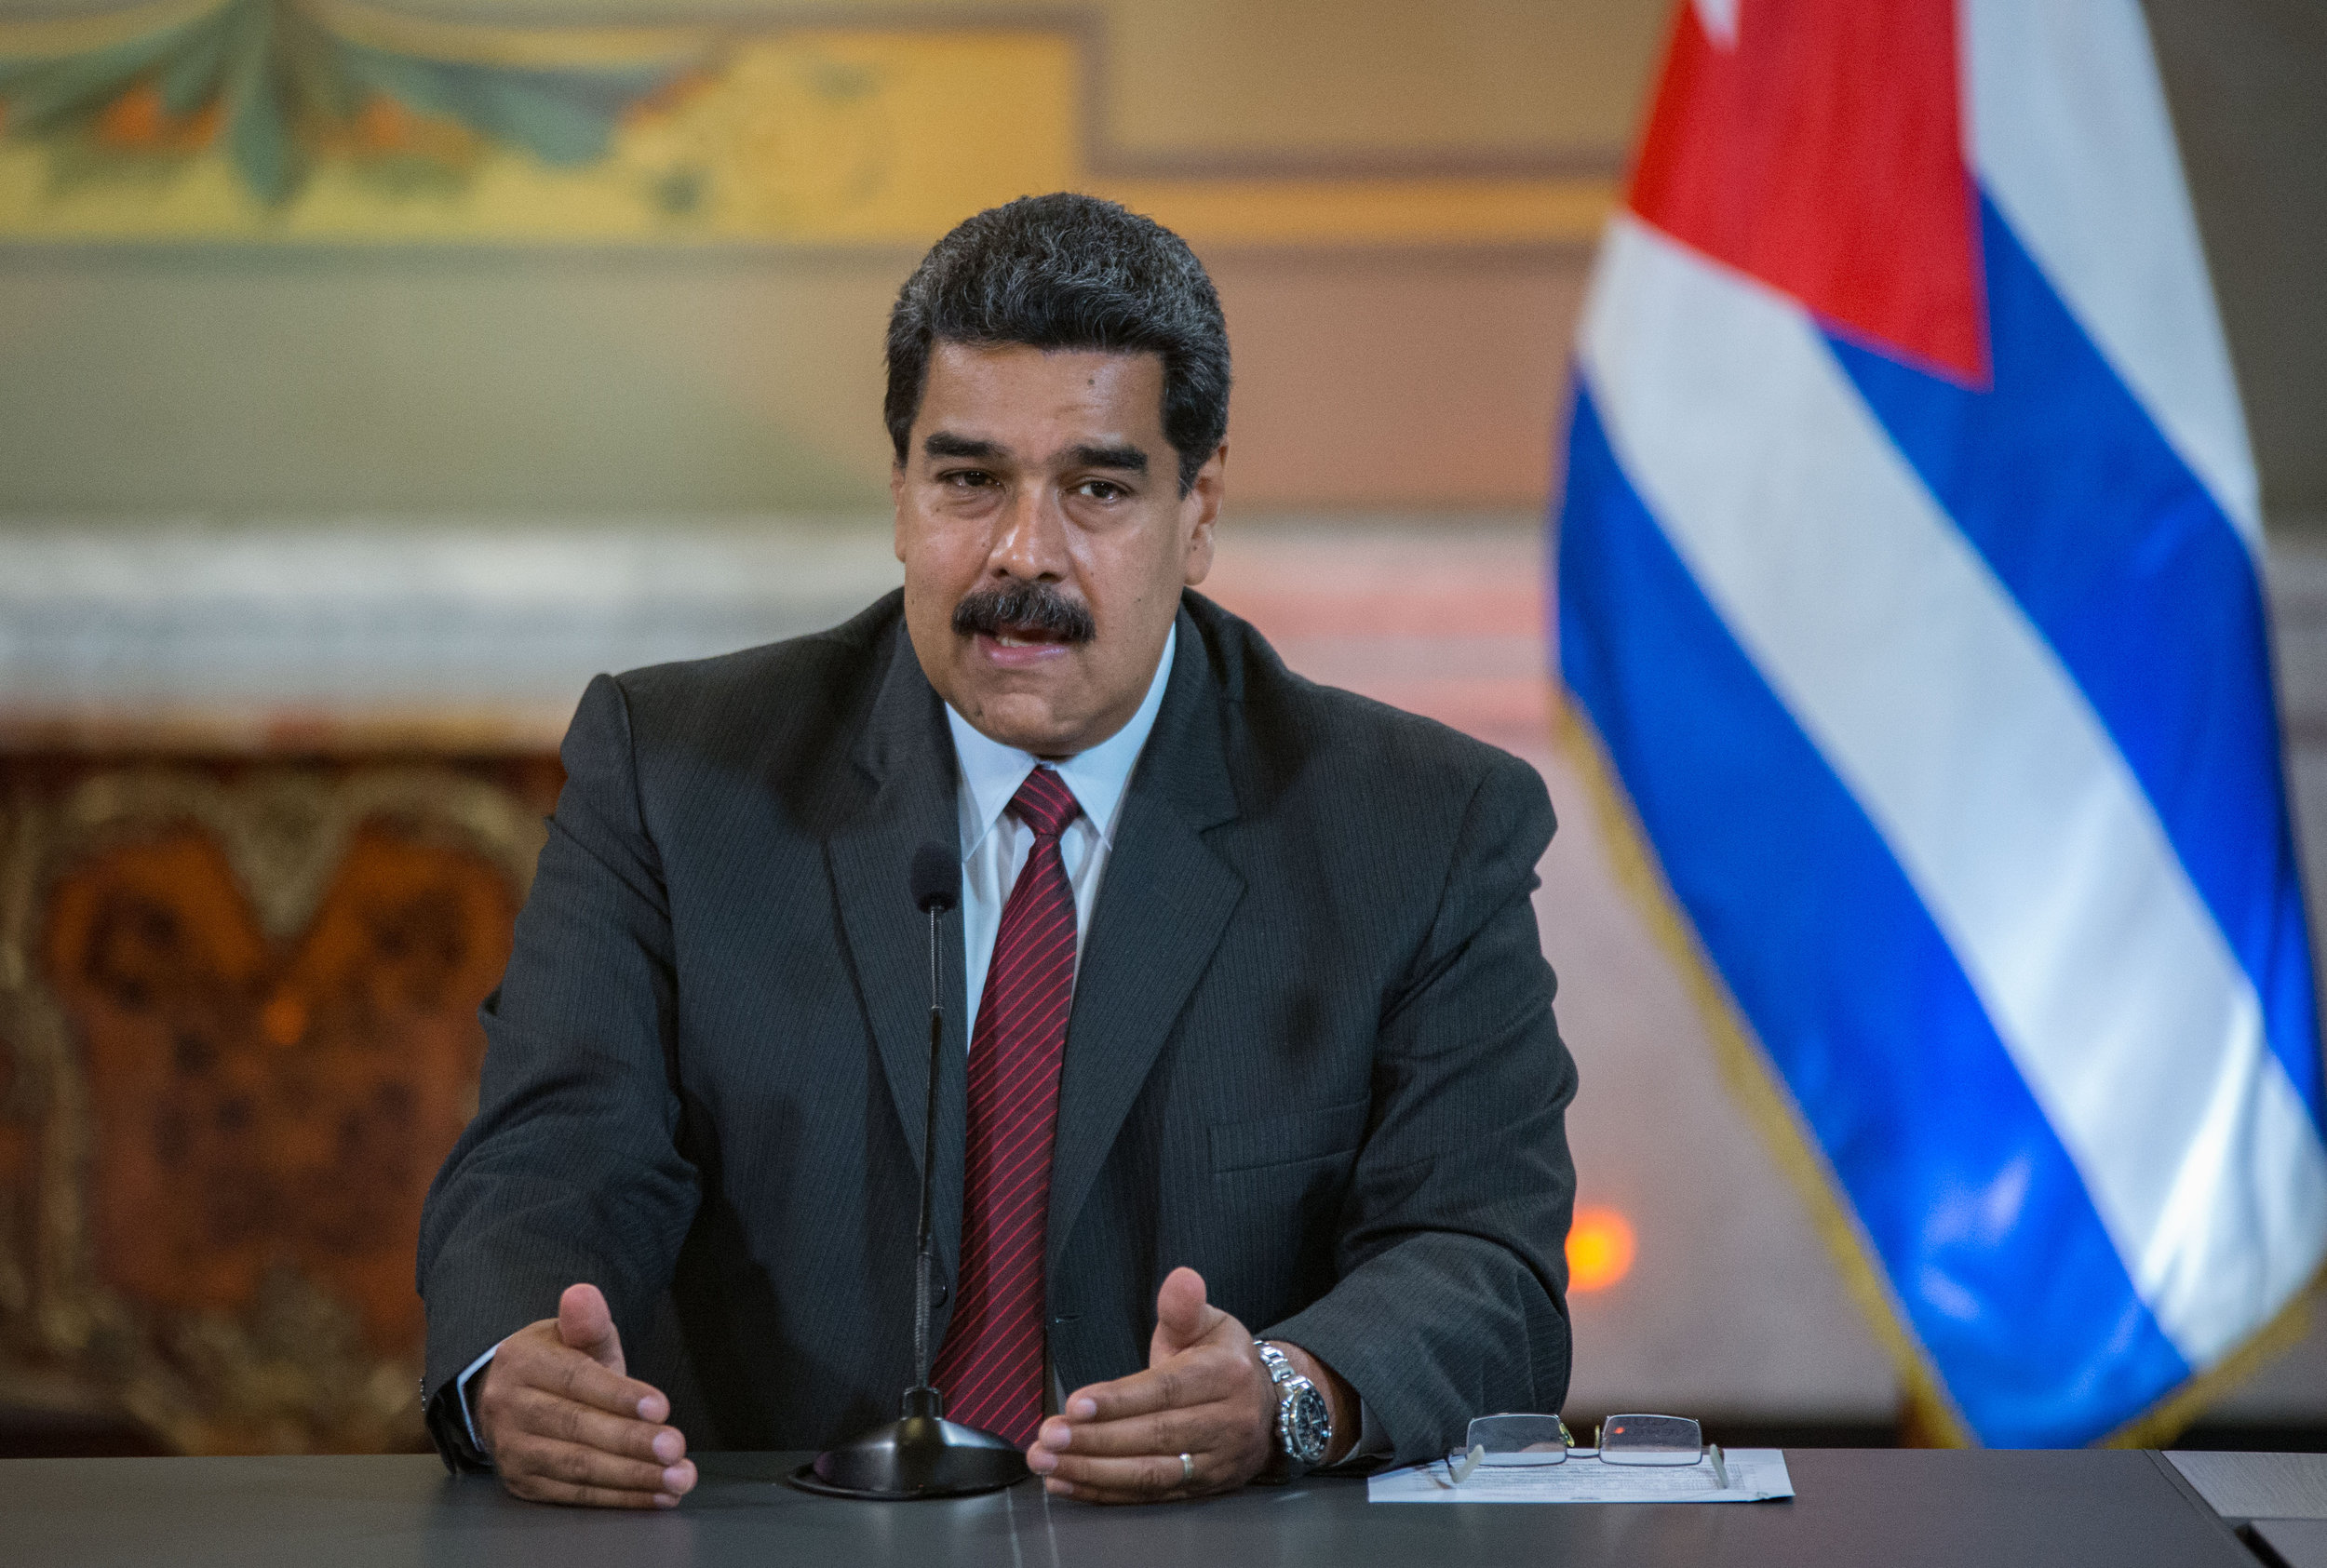 PICTURED:  Venezuelan President, Nicolas Maduro, whom the United States claims was illegitimately elected.